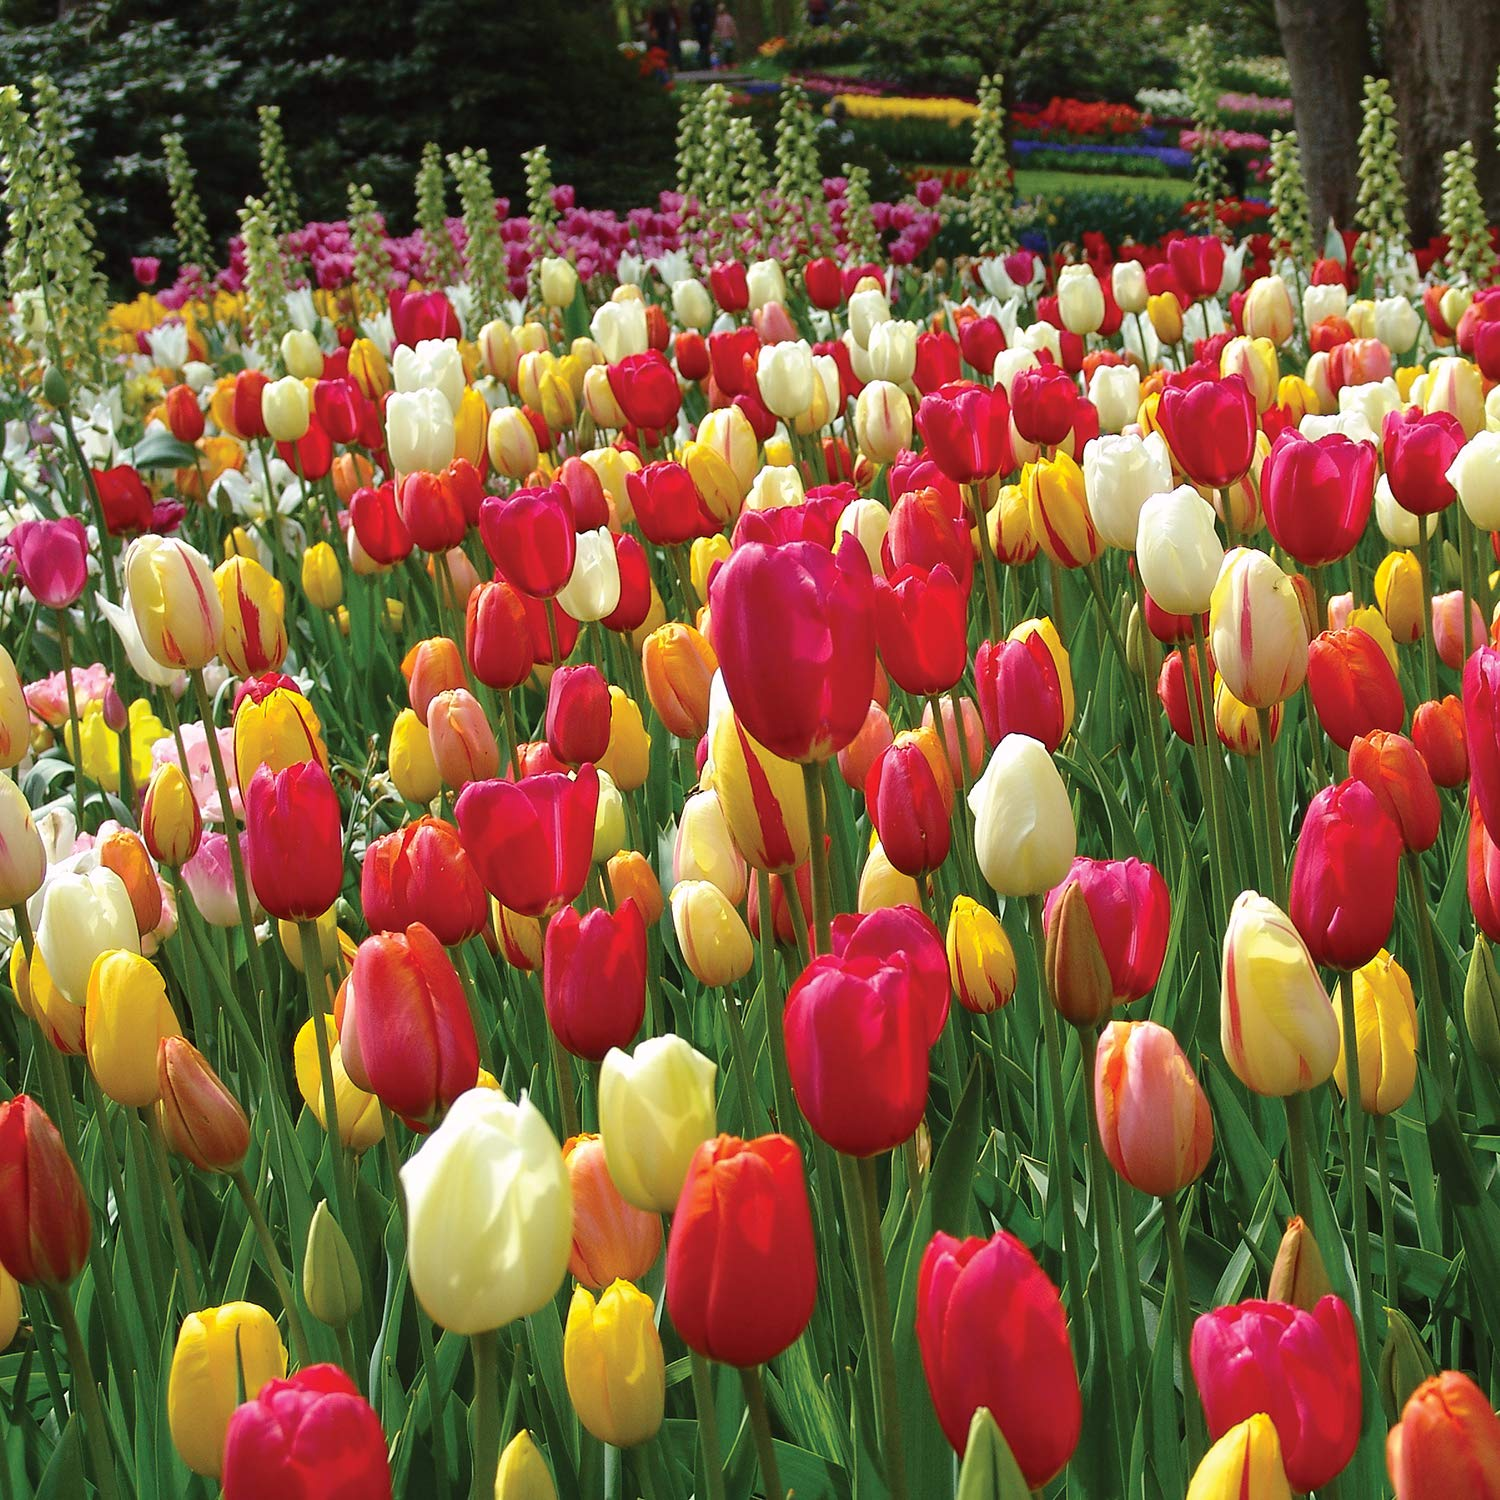 Burpee's Single Late Tulip Mix - 10 Flower Bulbs | Multiple Colors | 12 - 14cm Diameter by Burpee